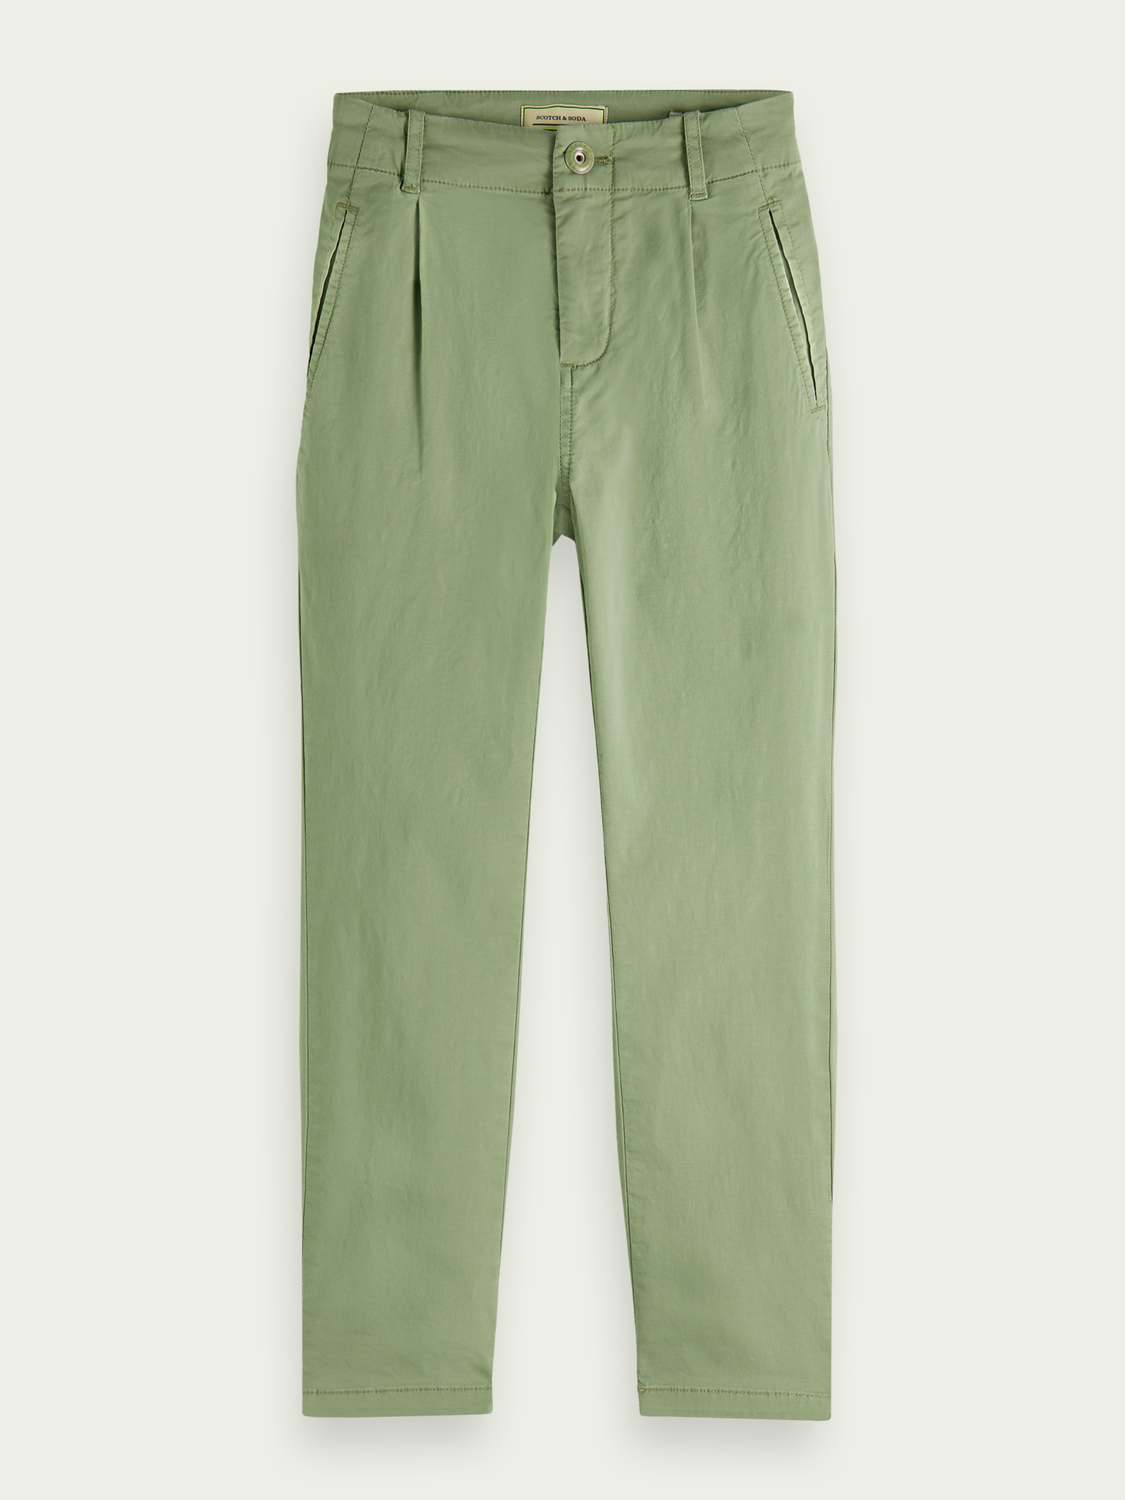 Kids Loose tapered fit cotton chino - Sea Foam